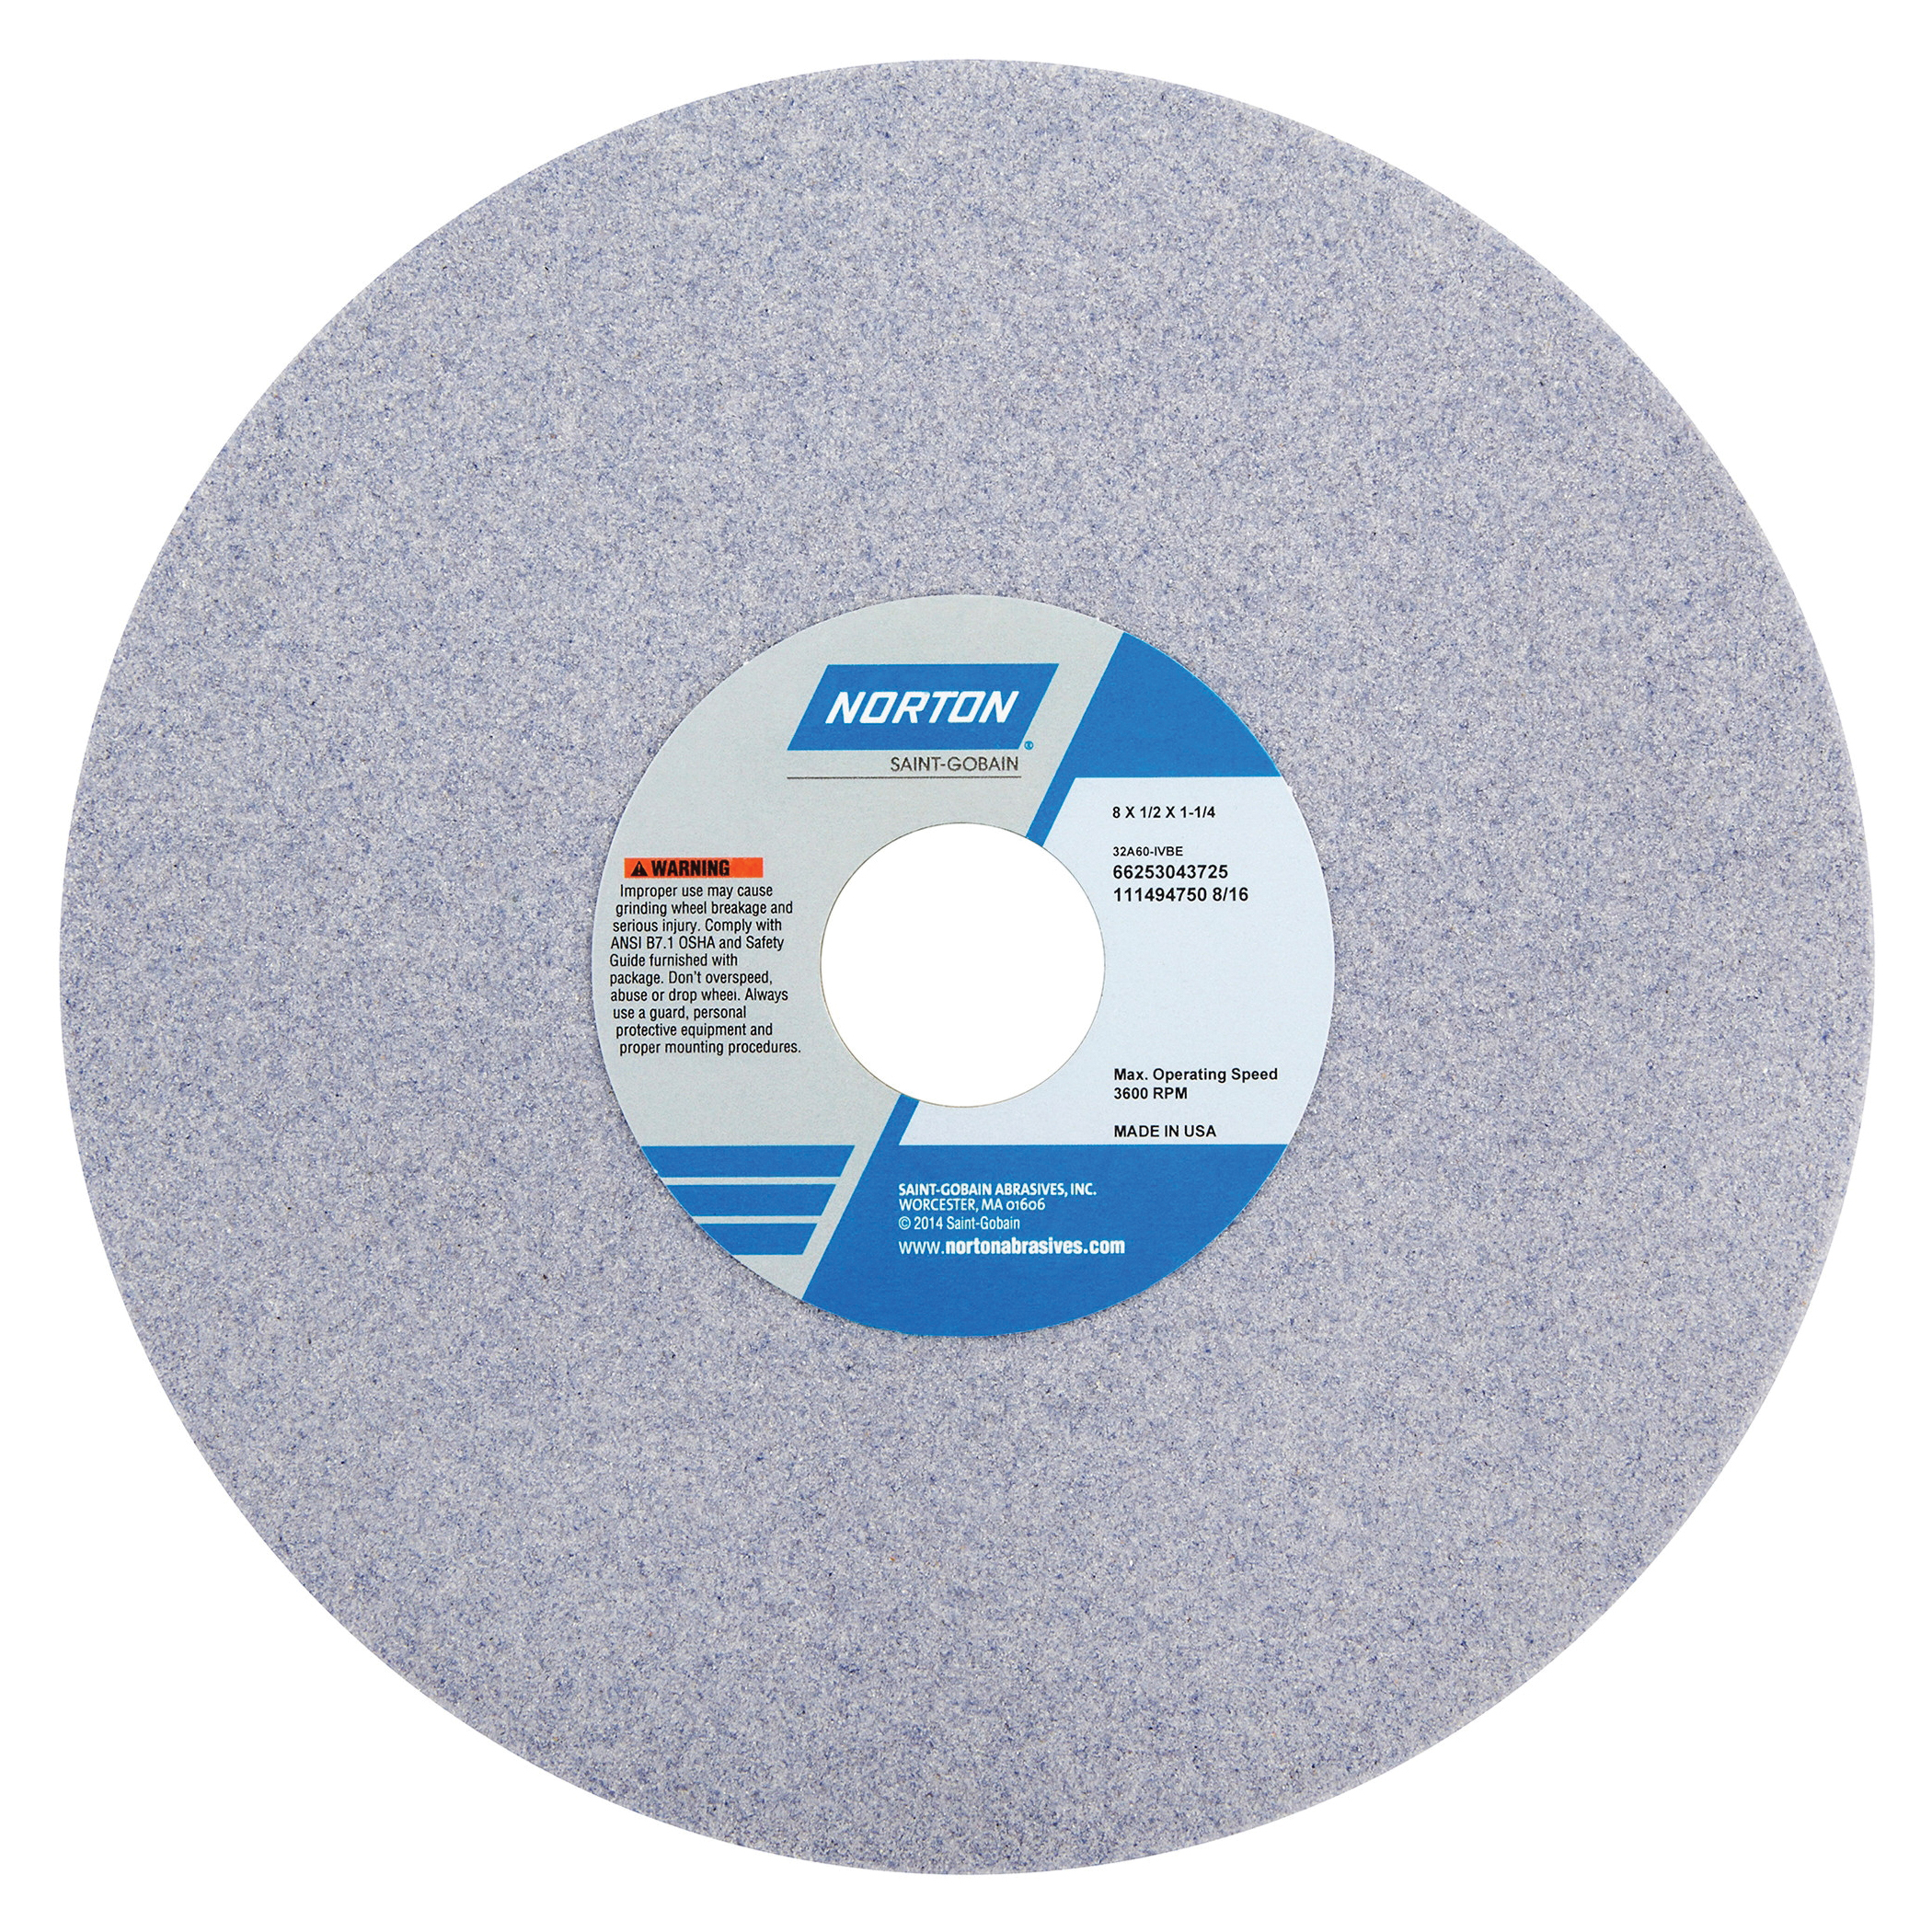 Norton® 66253043712 32A Straight Toolroom Wheel, 8 in Dia x 1/2 in THK, 1-1/4 in Center Hole, 46 Grit, Aluminum Oxide Abrasive